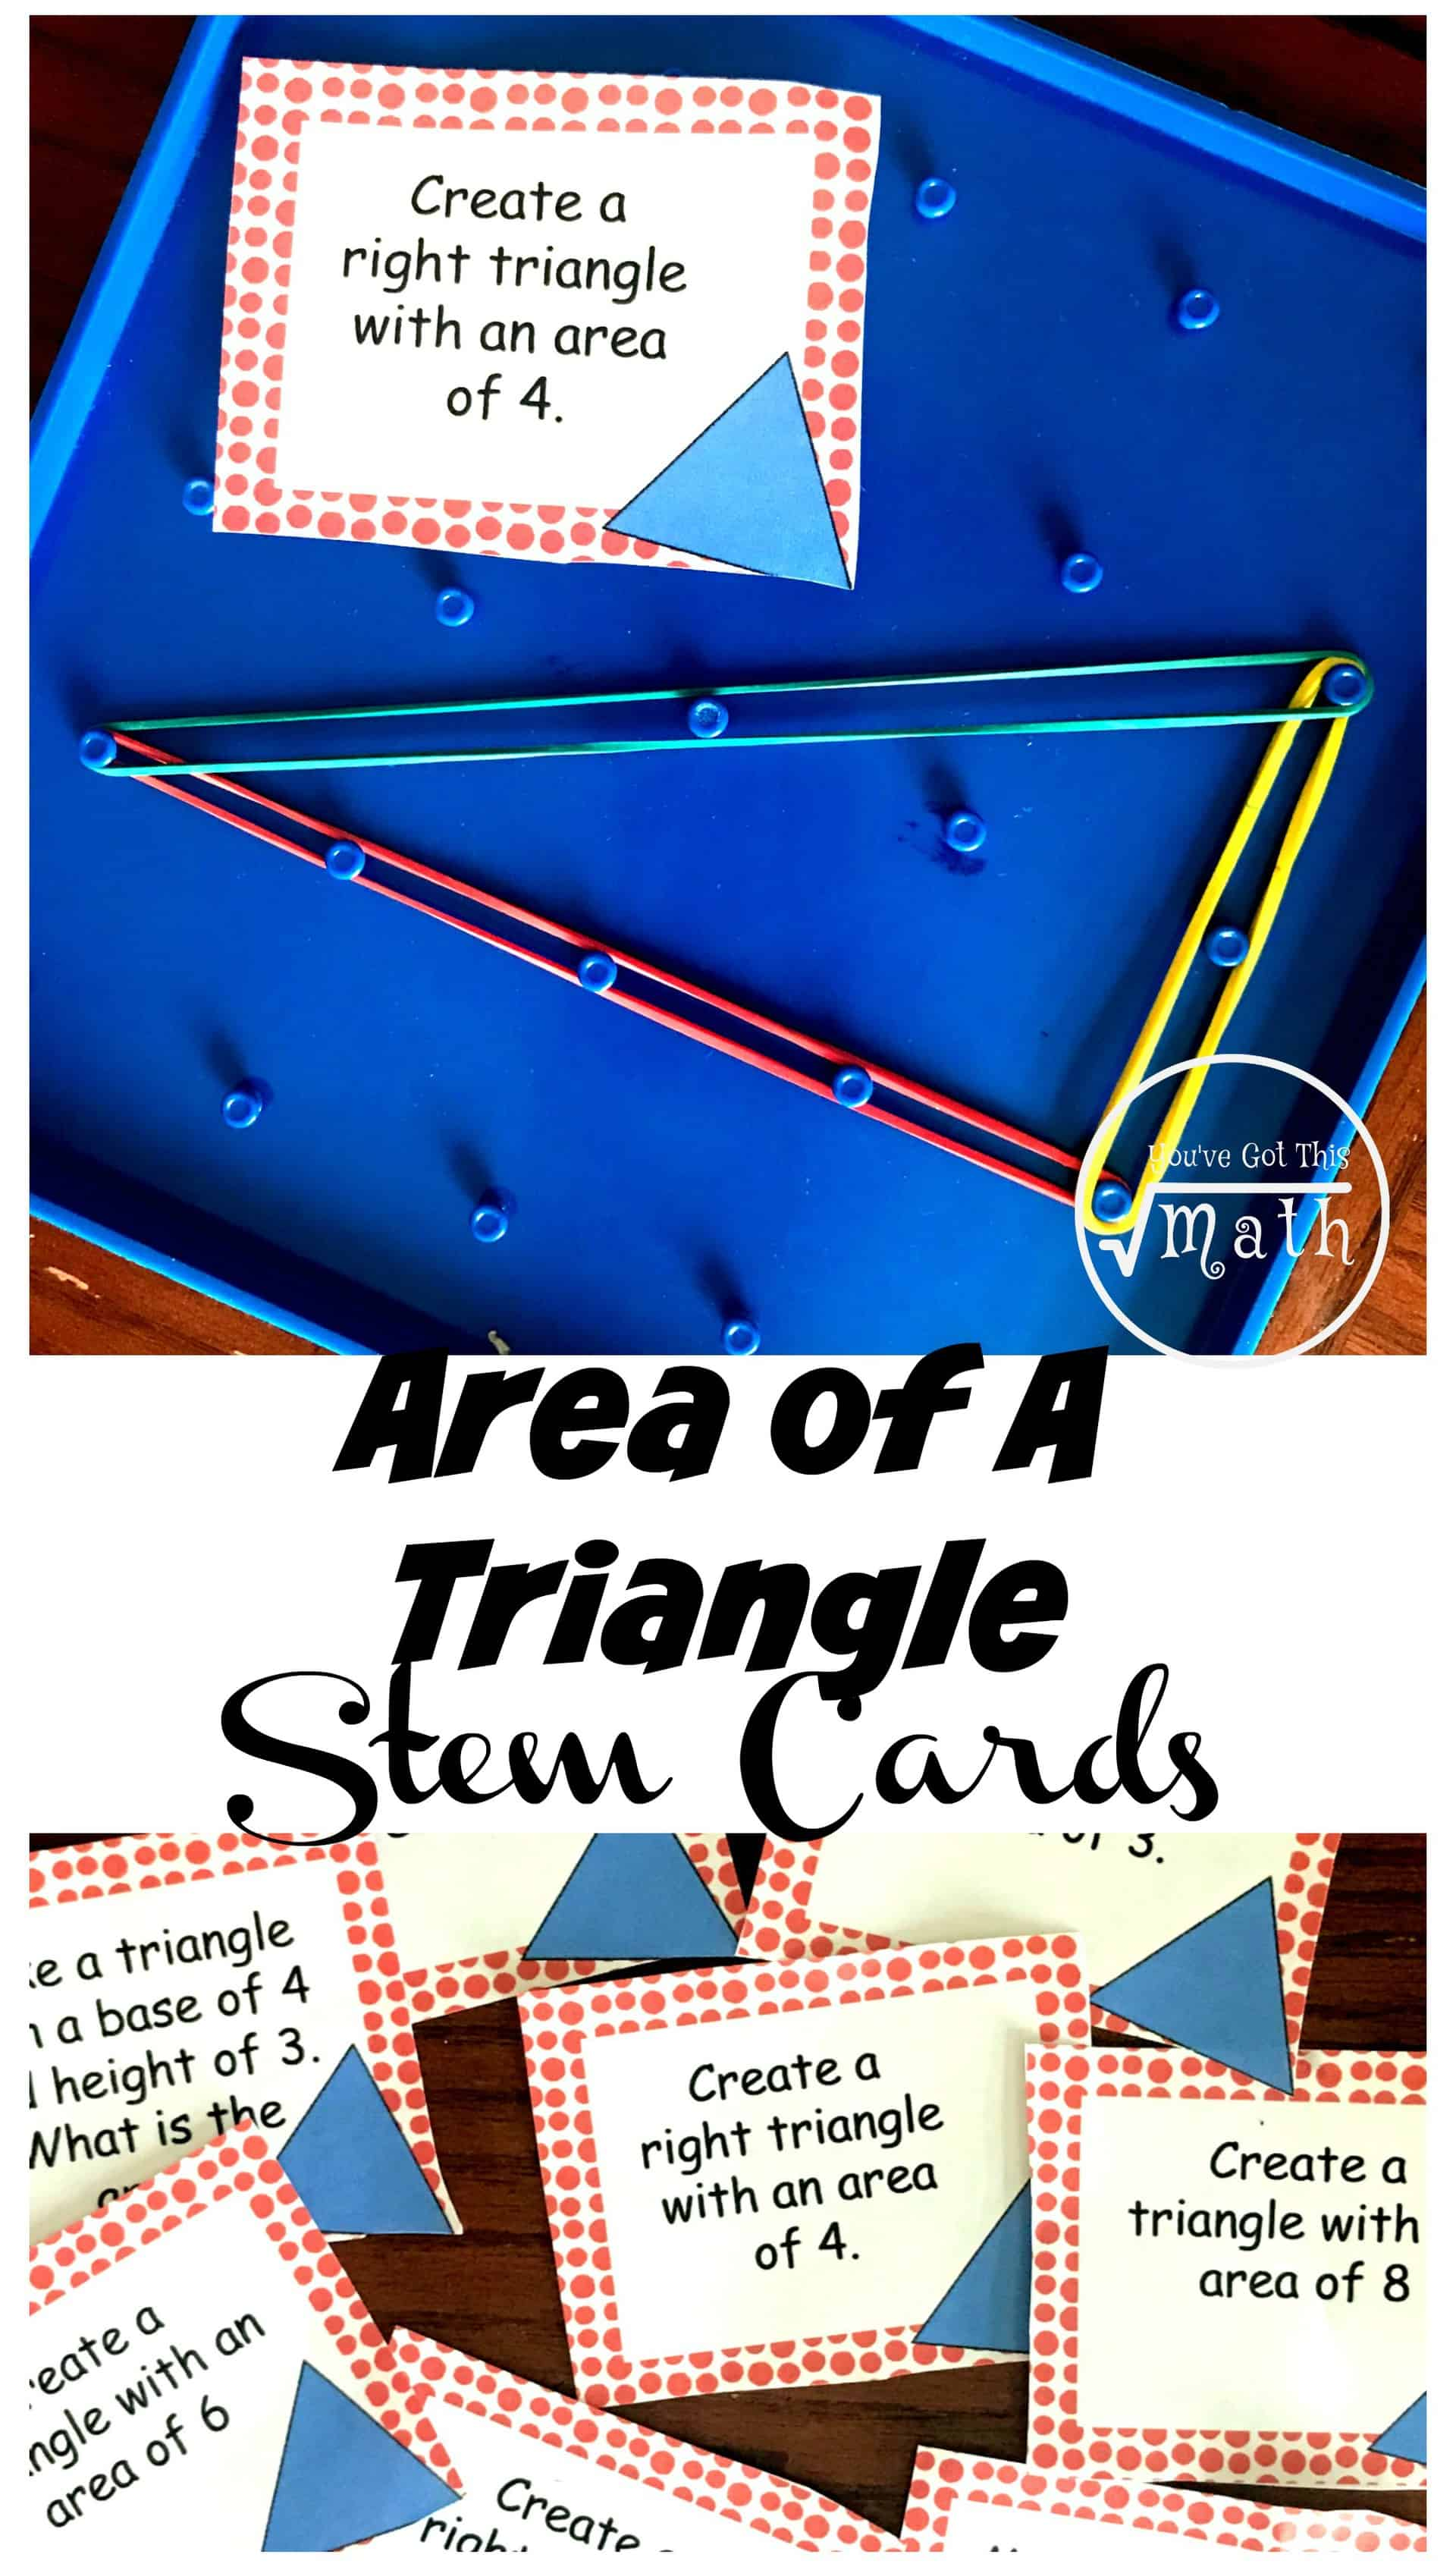 Need some Area of Triangles Practice? These fun STEM cards are a great way for children to practice finding the area of triangles as well as creating triangles with a given area.